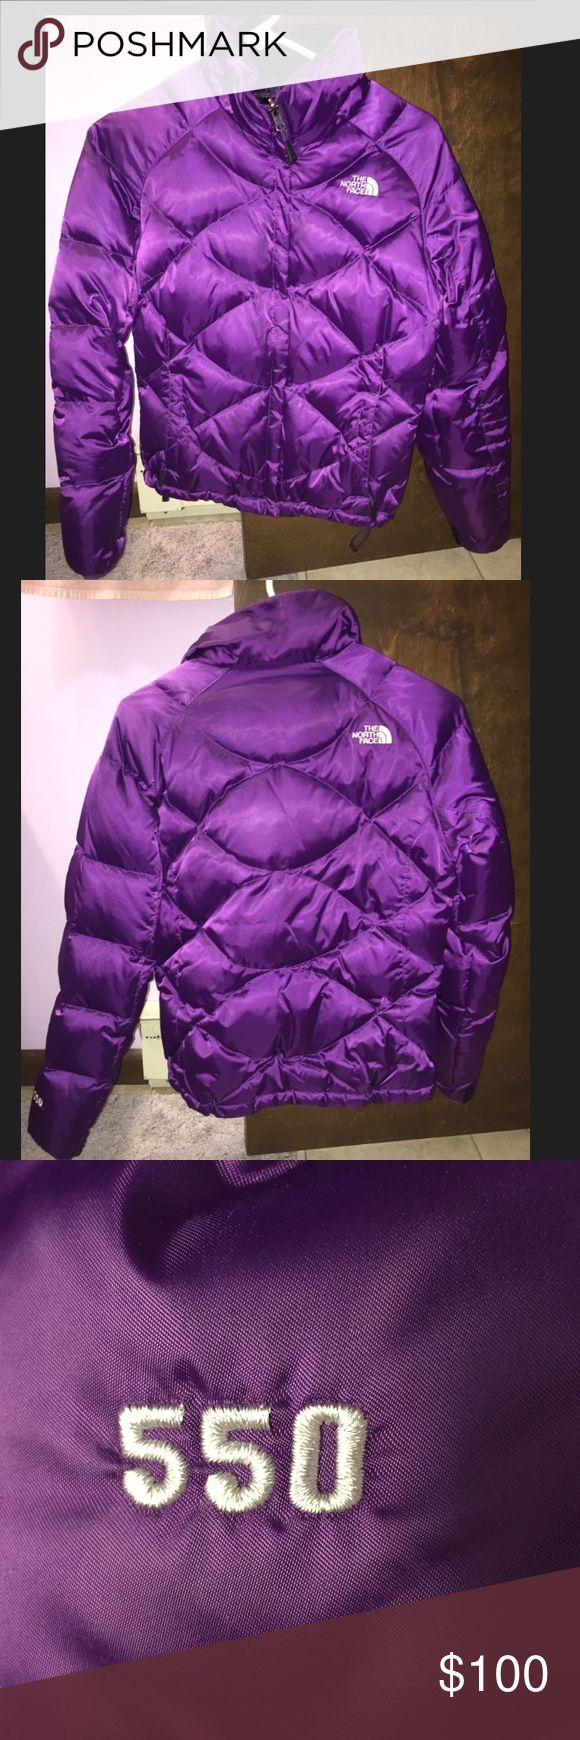 North face 550 puffer jacket Beautiful purple puffer jacket by the North Face. Great condition, no visible marks or stains that I can see! North face logo on upper right back and chest. No good but zips up around the neck. Inside is a warm fleece and it is the 550 filled version. I believe this is the aconcagua jacket from a few years ago. Women's size small. Perfect for cold winter days :) North Face Jackets & Coats Puffers